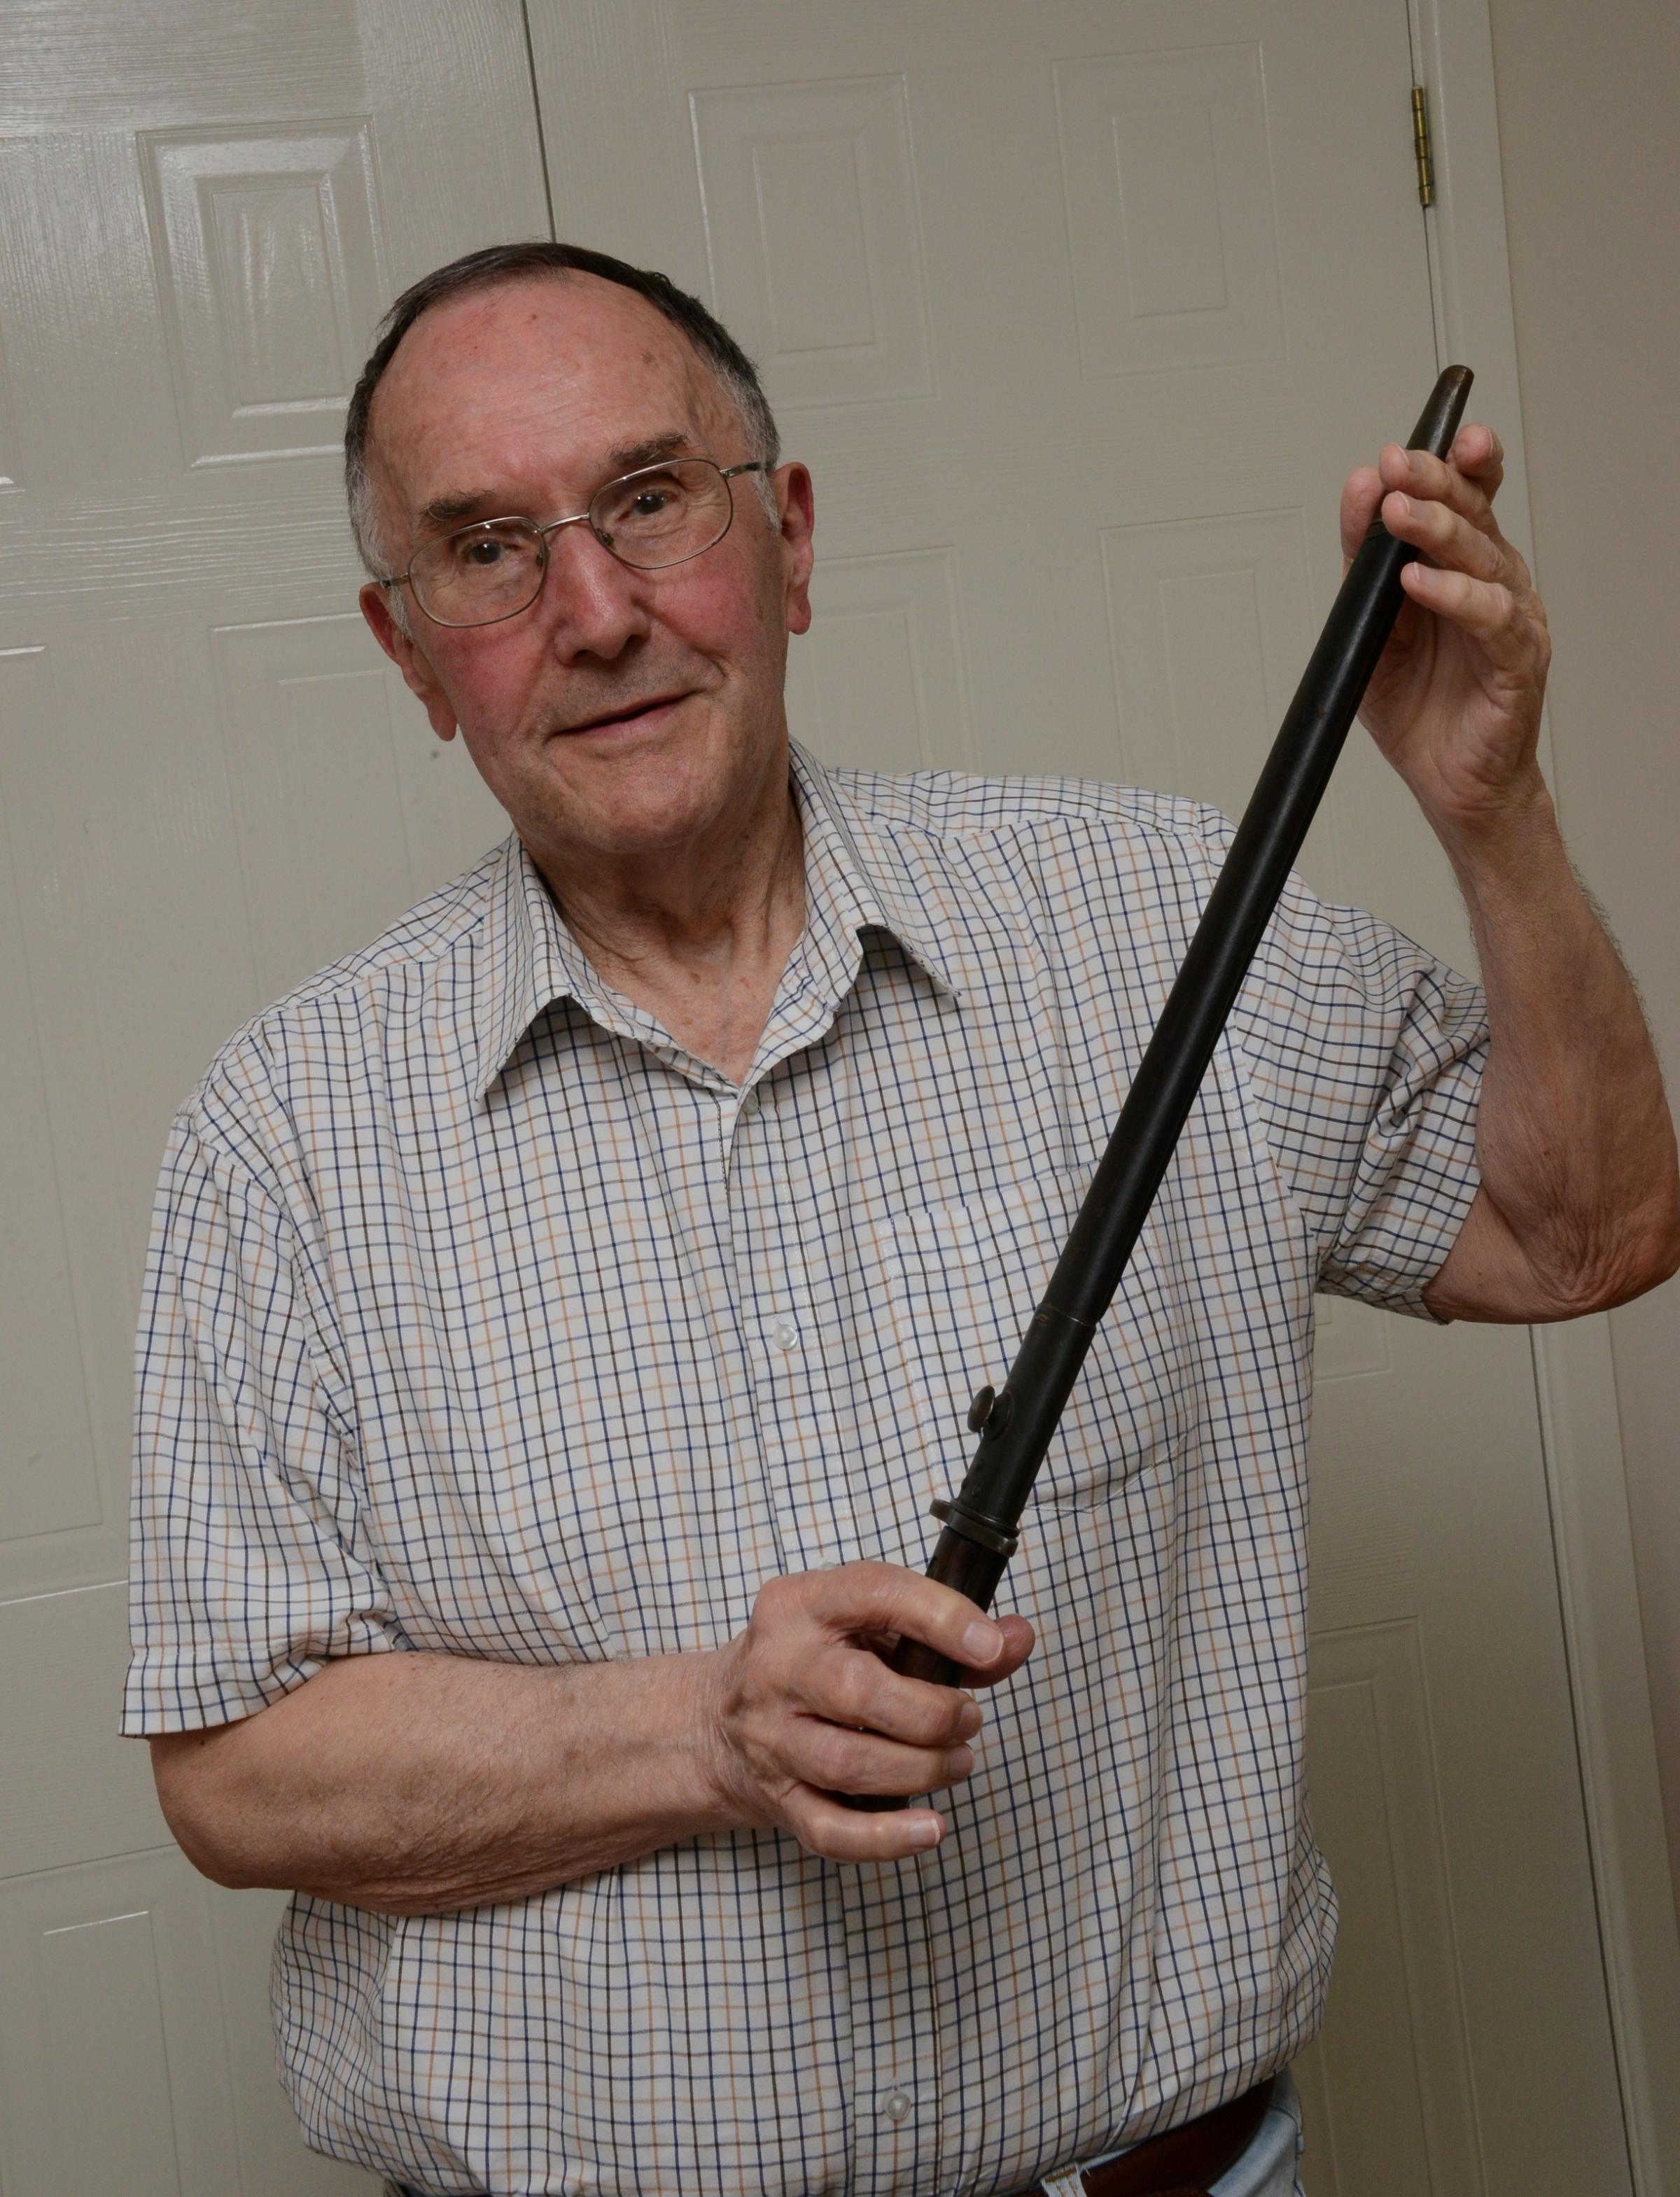 Ray Haycock with World War One bayonet similar to the one which belonged to his father. Ray with the bayonet from Kington museum. 1729_6003.